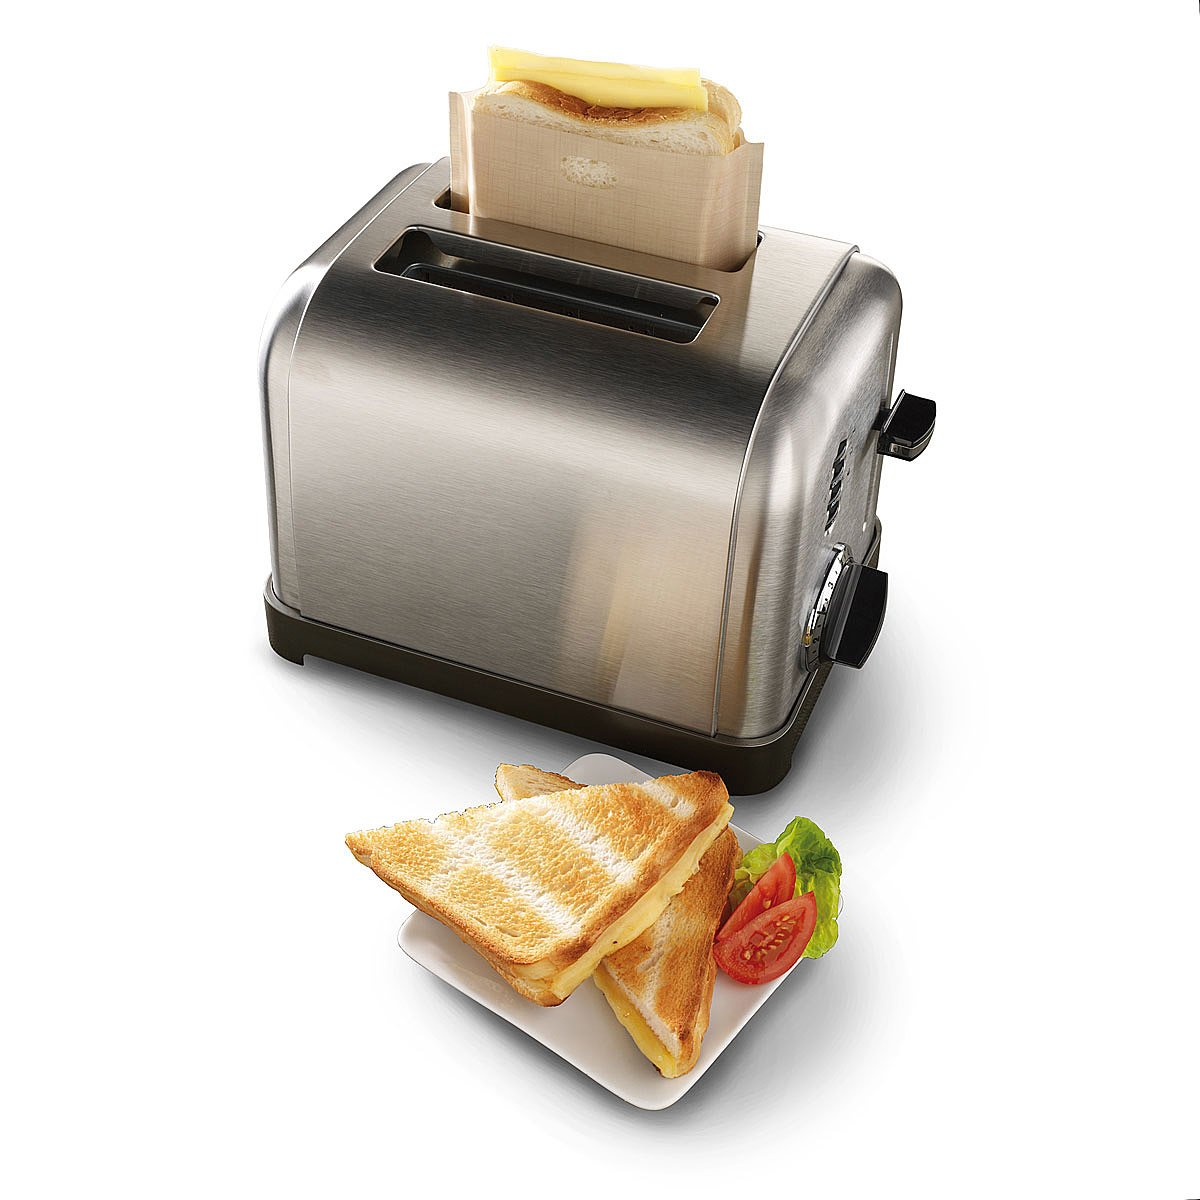 Toast bread bag teflon coated non-stick reusable toaster bag for grilled cheese sandwiches